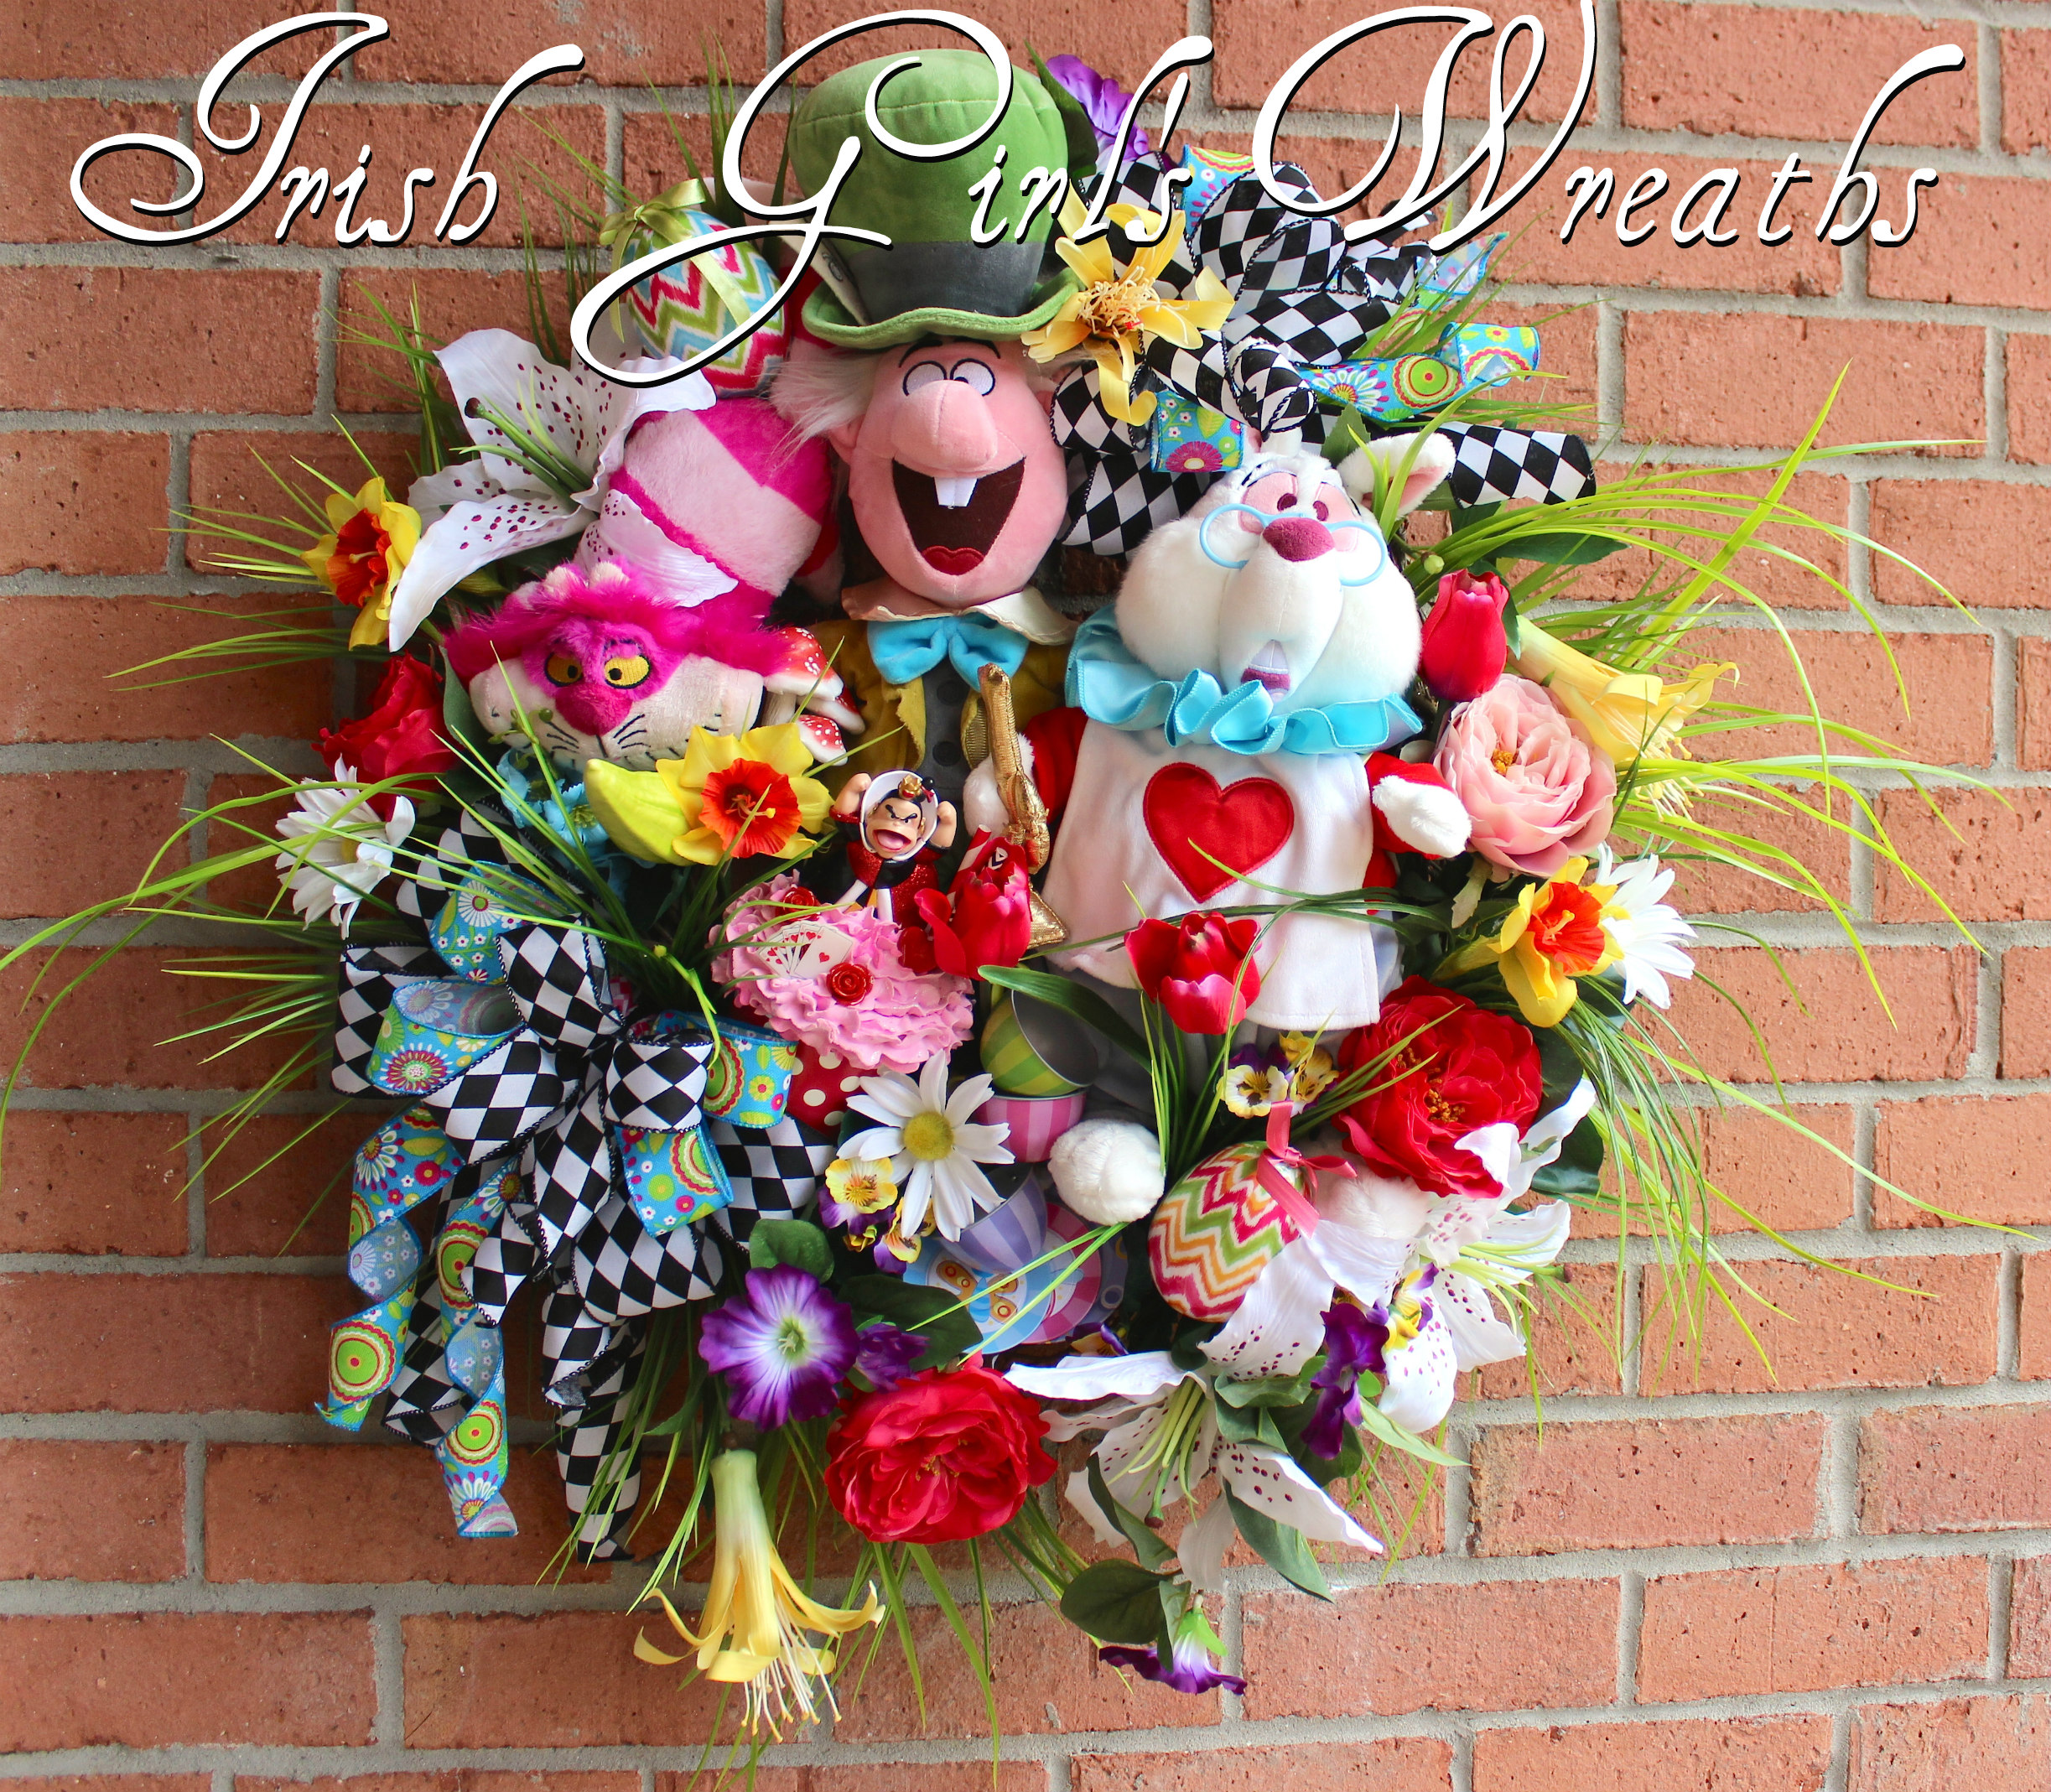 Alice in Wonderland Easter and Spring Celebration Wreath, CUSTOM ORDER FOR PATTY, Mad Hatter, White Rabbit, Cheshire Cat, Queen of Hearts